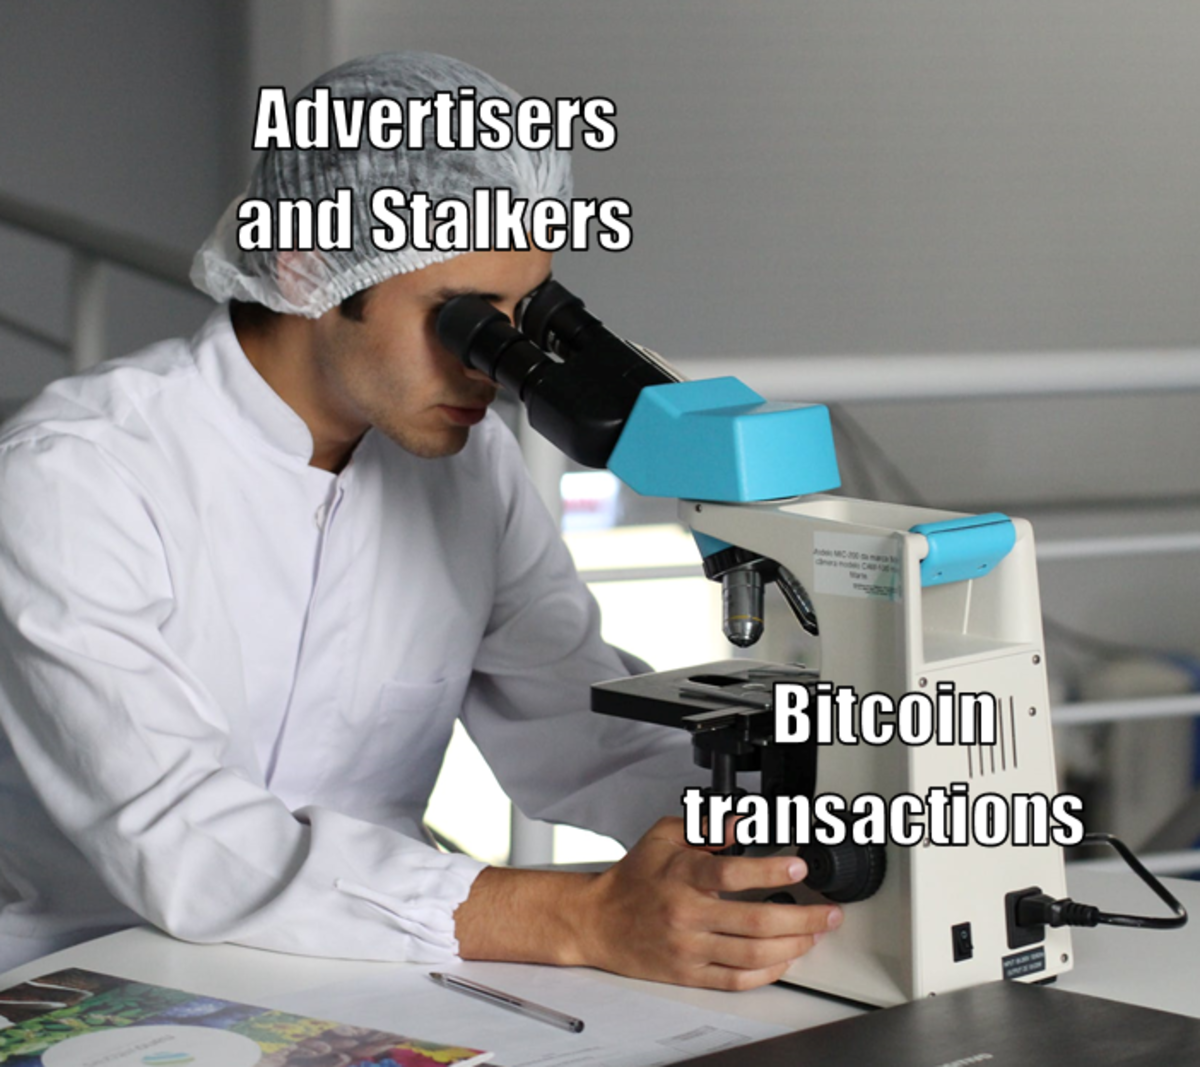 Bitcoin may be anonymous, but it's not private.